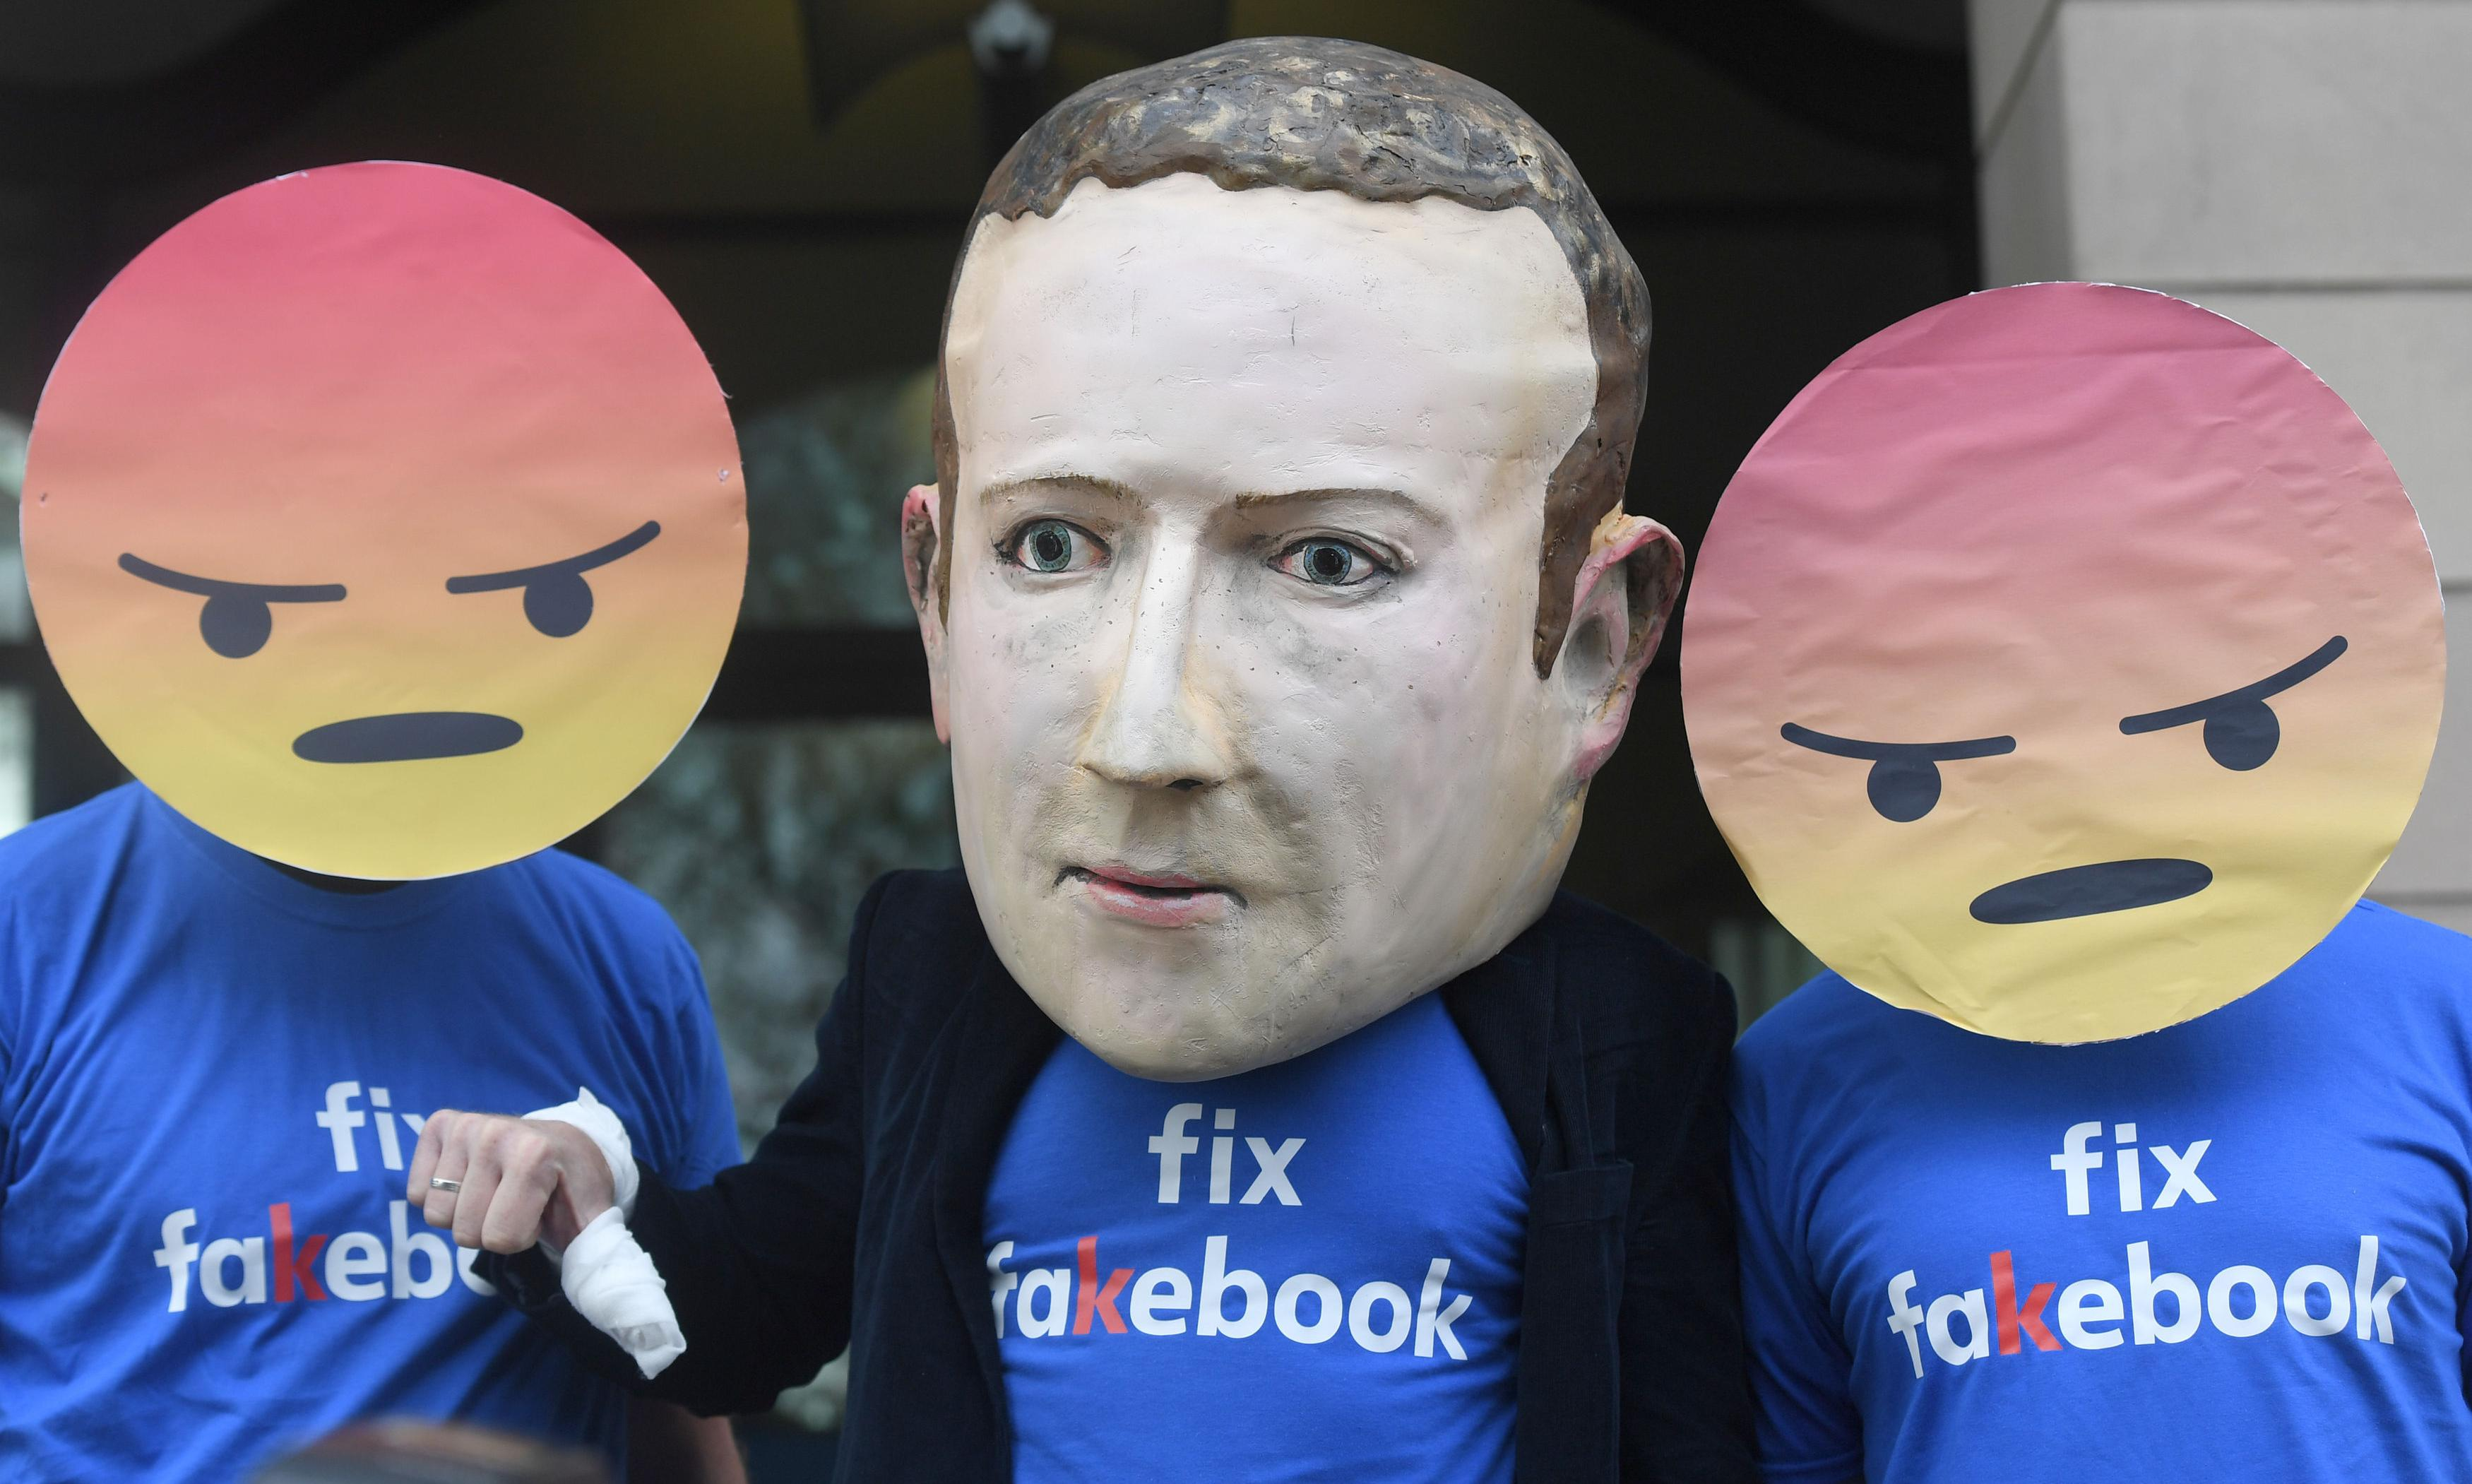 A digital gangster destroying democracy: the damning verdict on Facebook